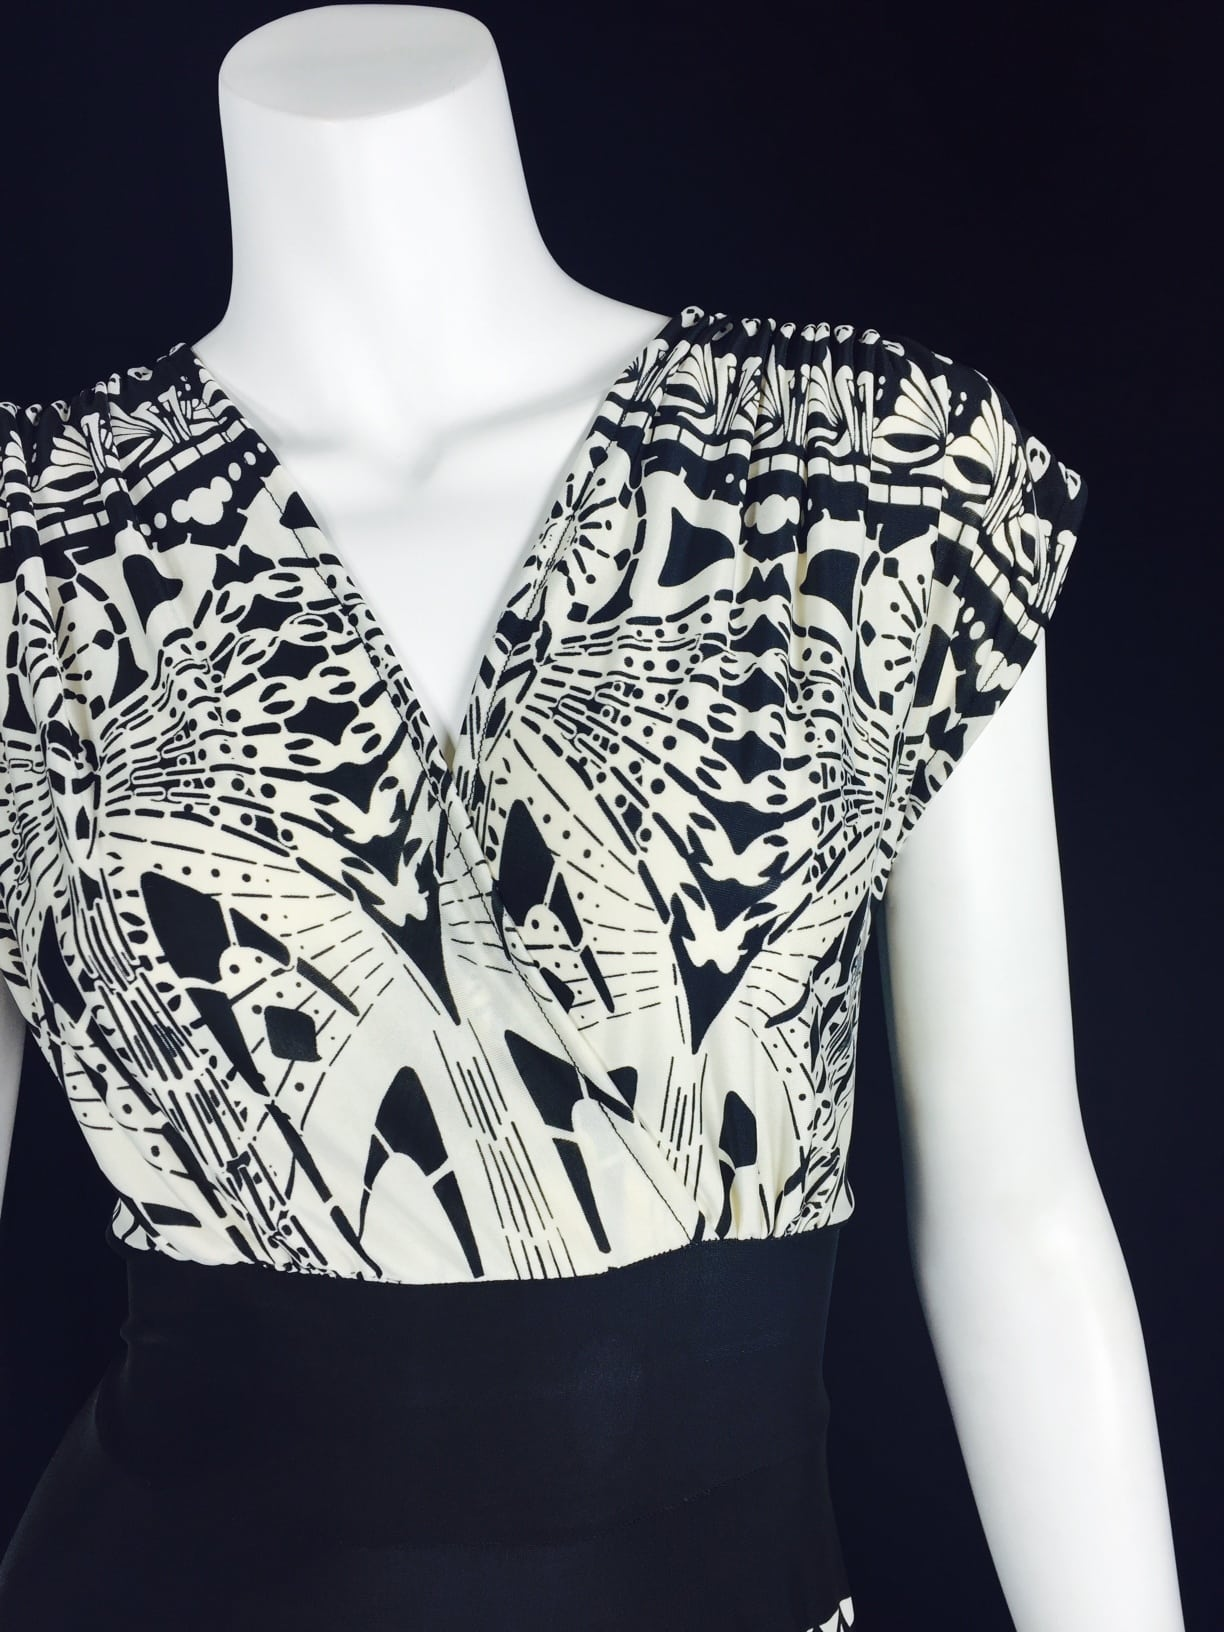 Art Nouveau Black and White Knee Length Veronica Lake Dress - Front Detail